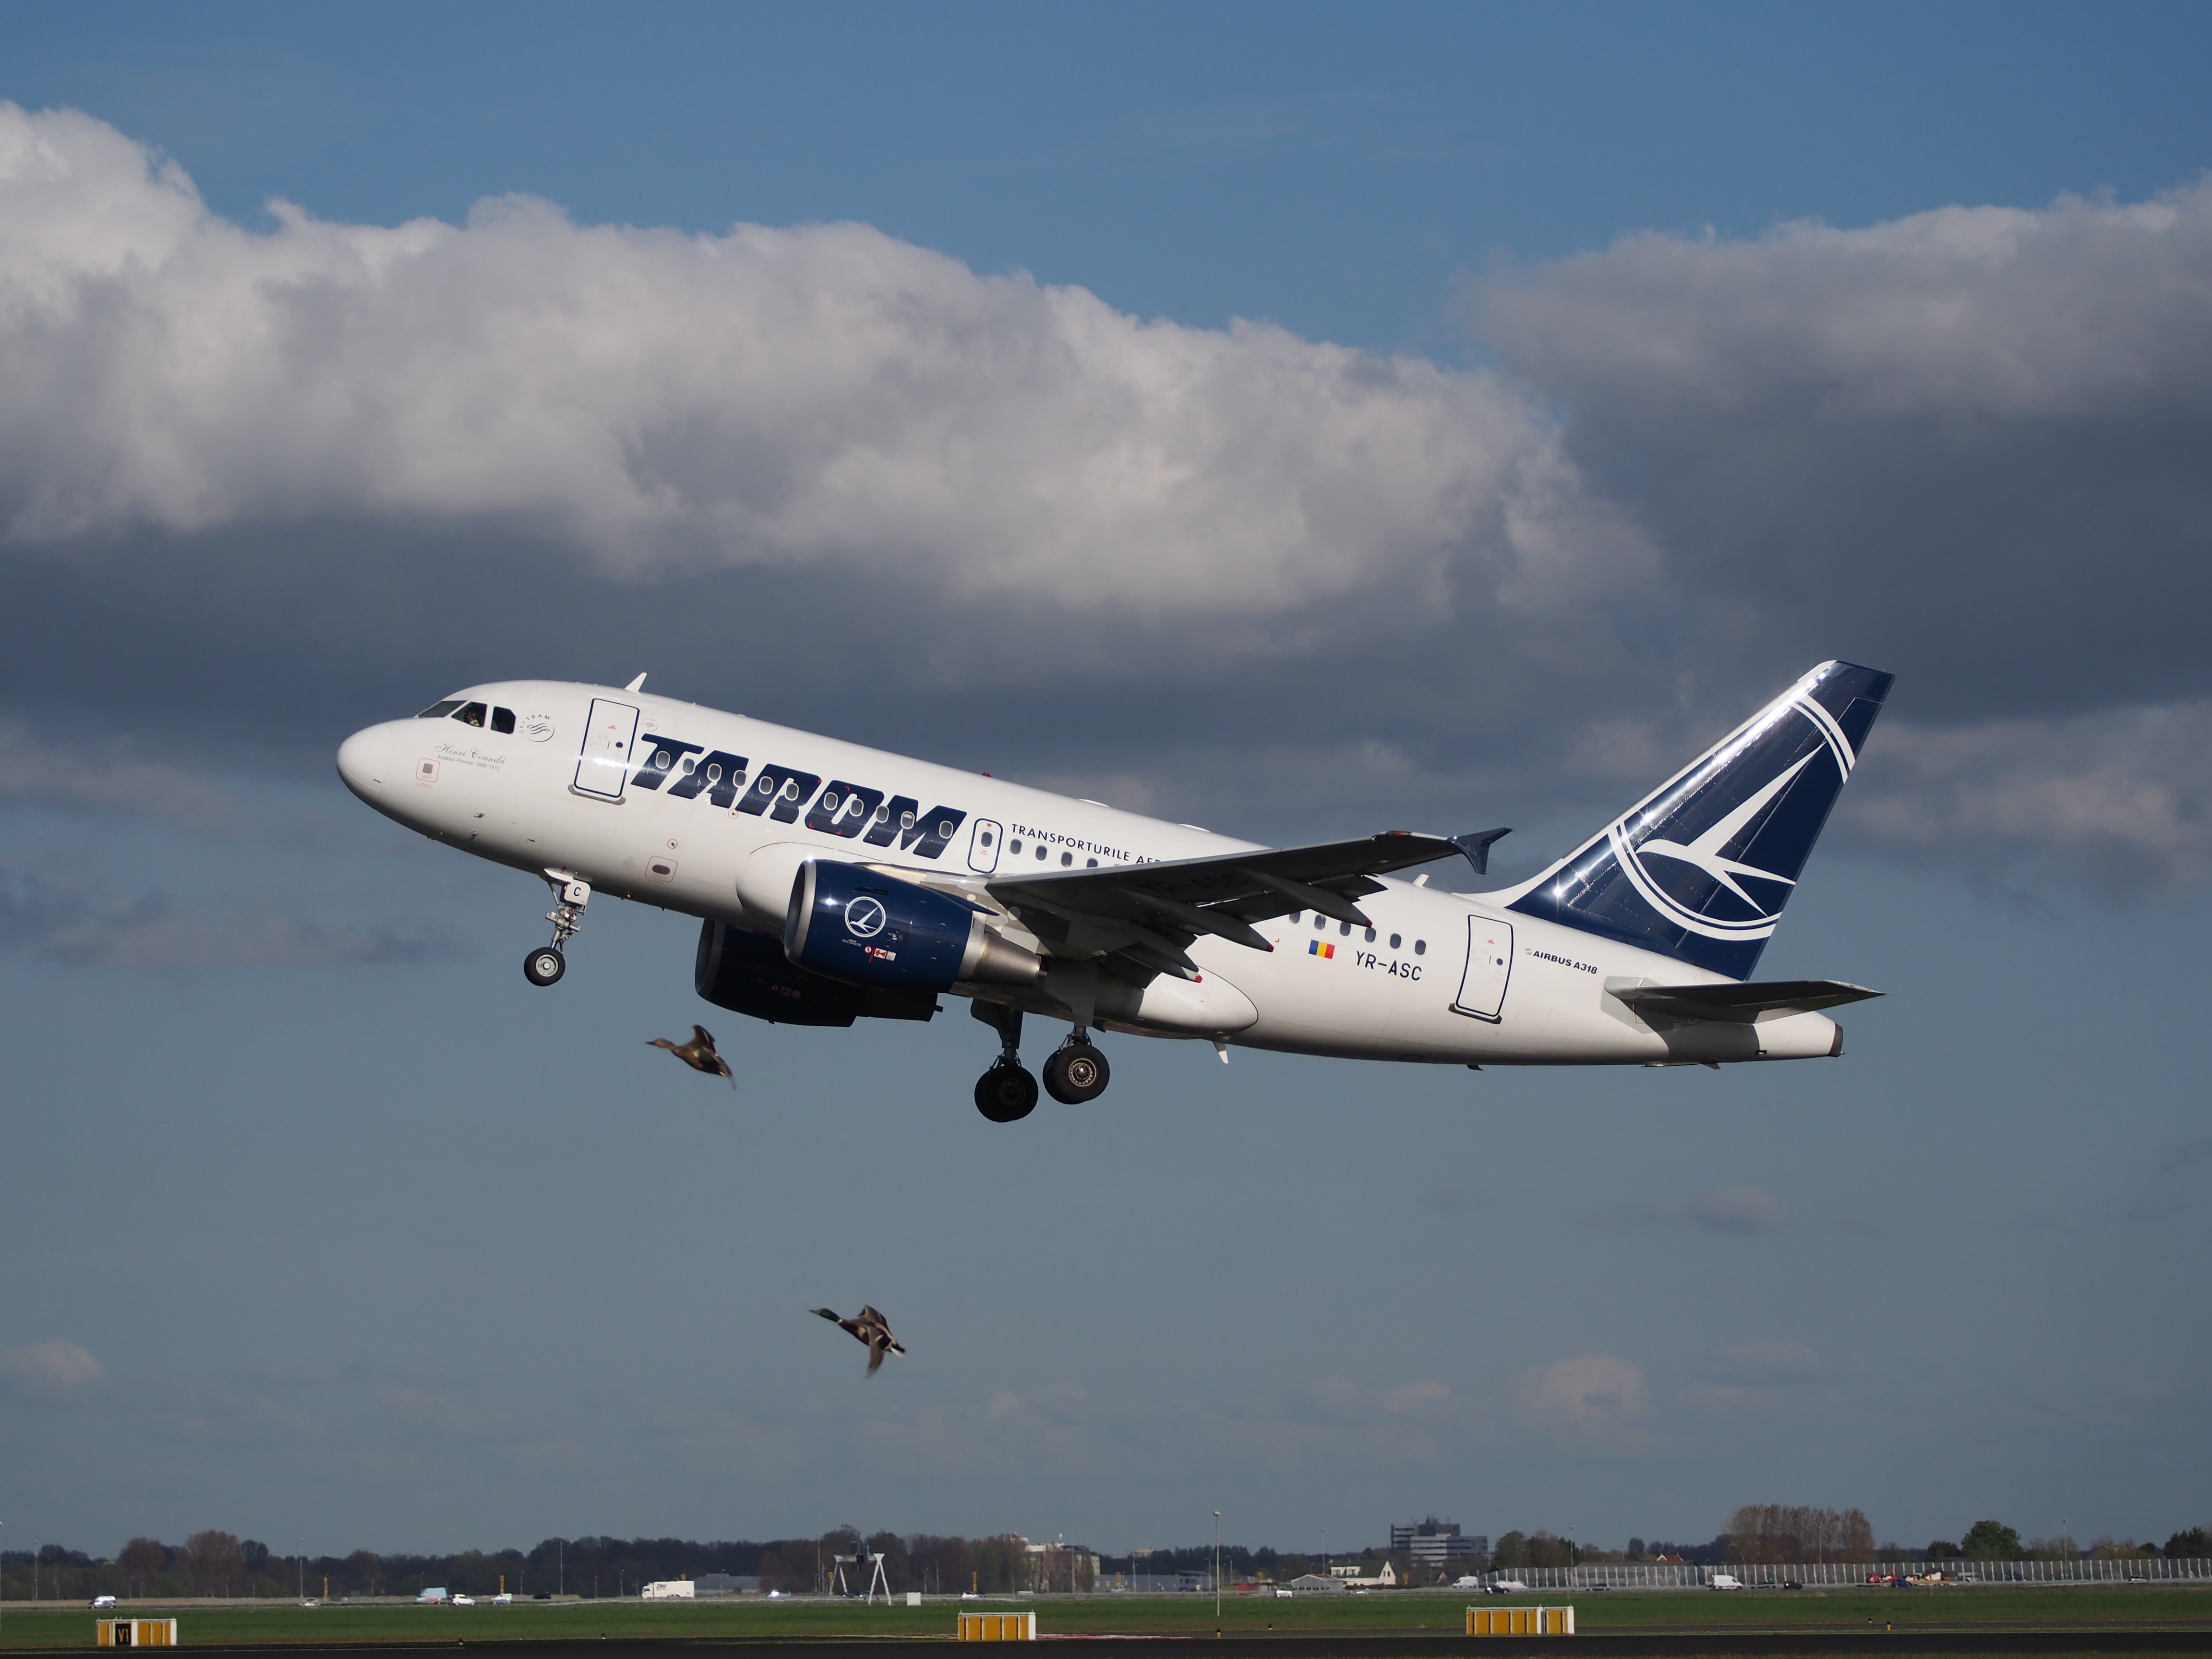 YR-ASC TAROM Airbus A318-111 takeoff from Polderbaan (no bird bird strike), Schiphol (AMS - EHAM) at sunset, pic2.JPG, Credit: Wikimedia Commons